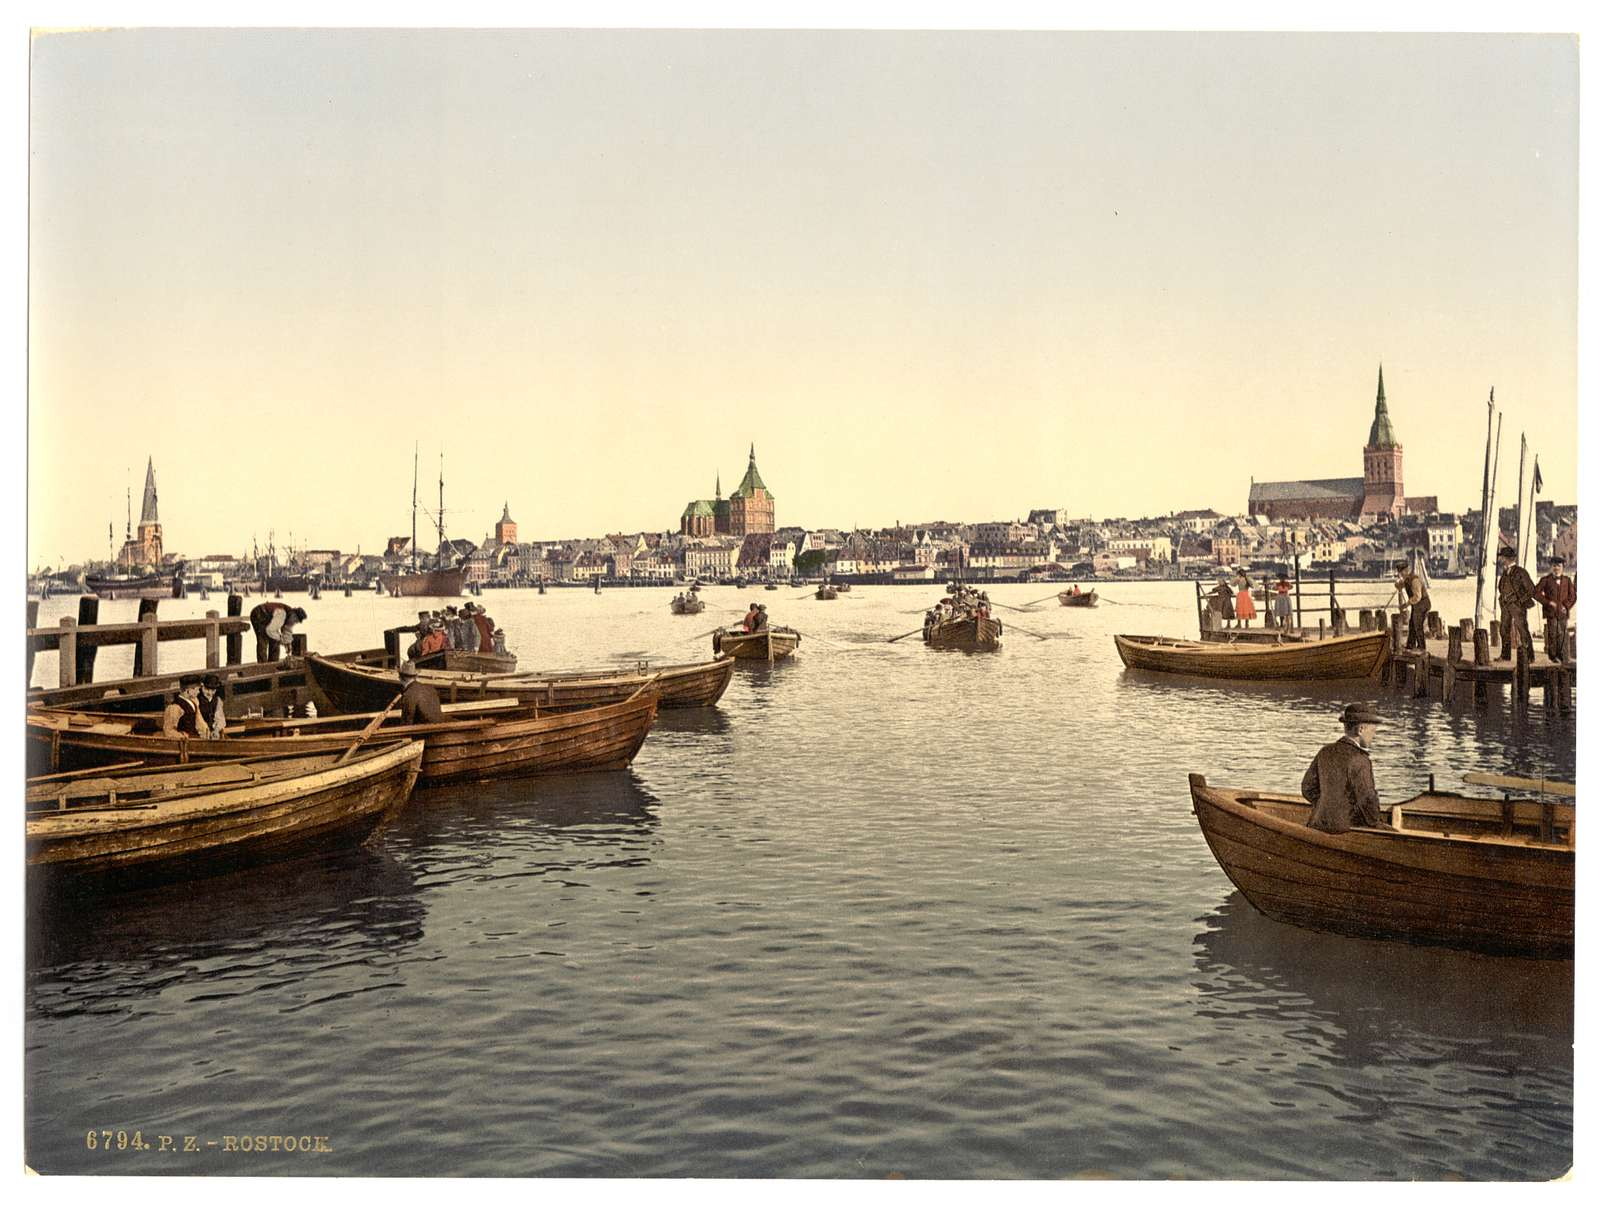 [General view, Rostock, Mecklenburg-Schwern, Germany]